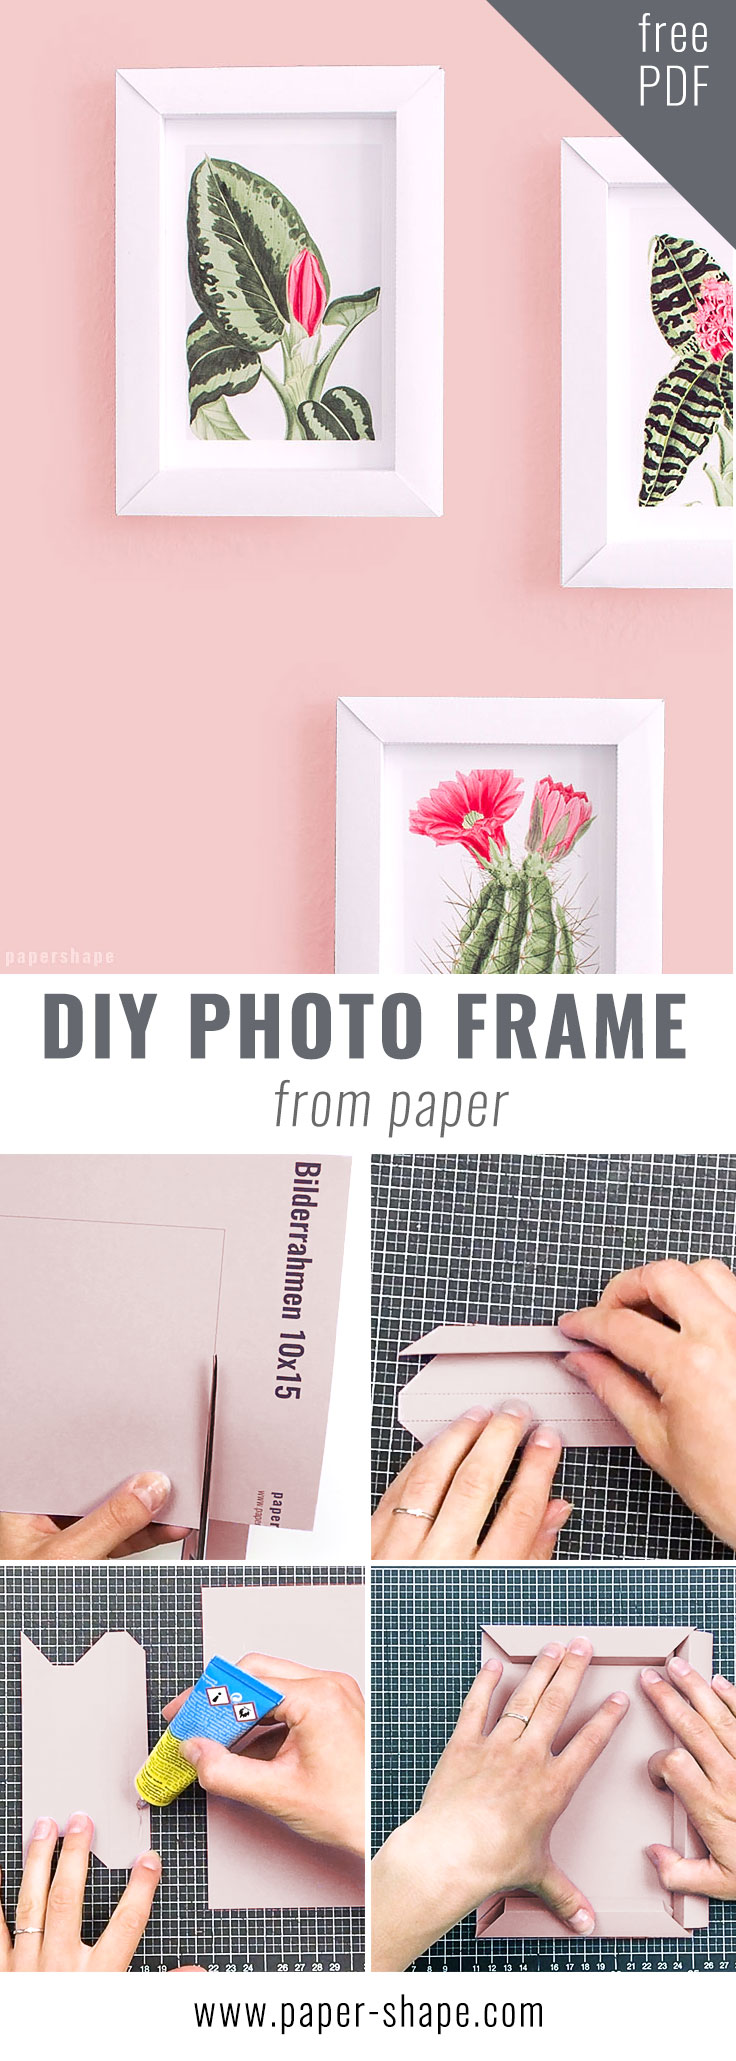 Paper photo frame tutorial - cute diy with template and instructions / PaperShape #papershape #photoframe #diywithkids #walldecor